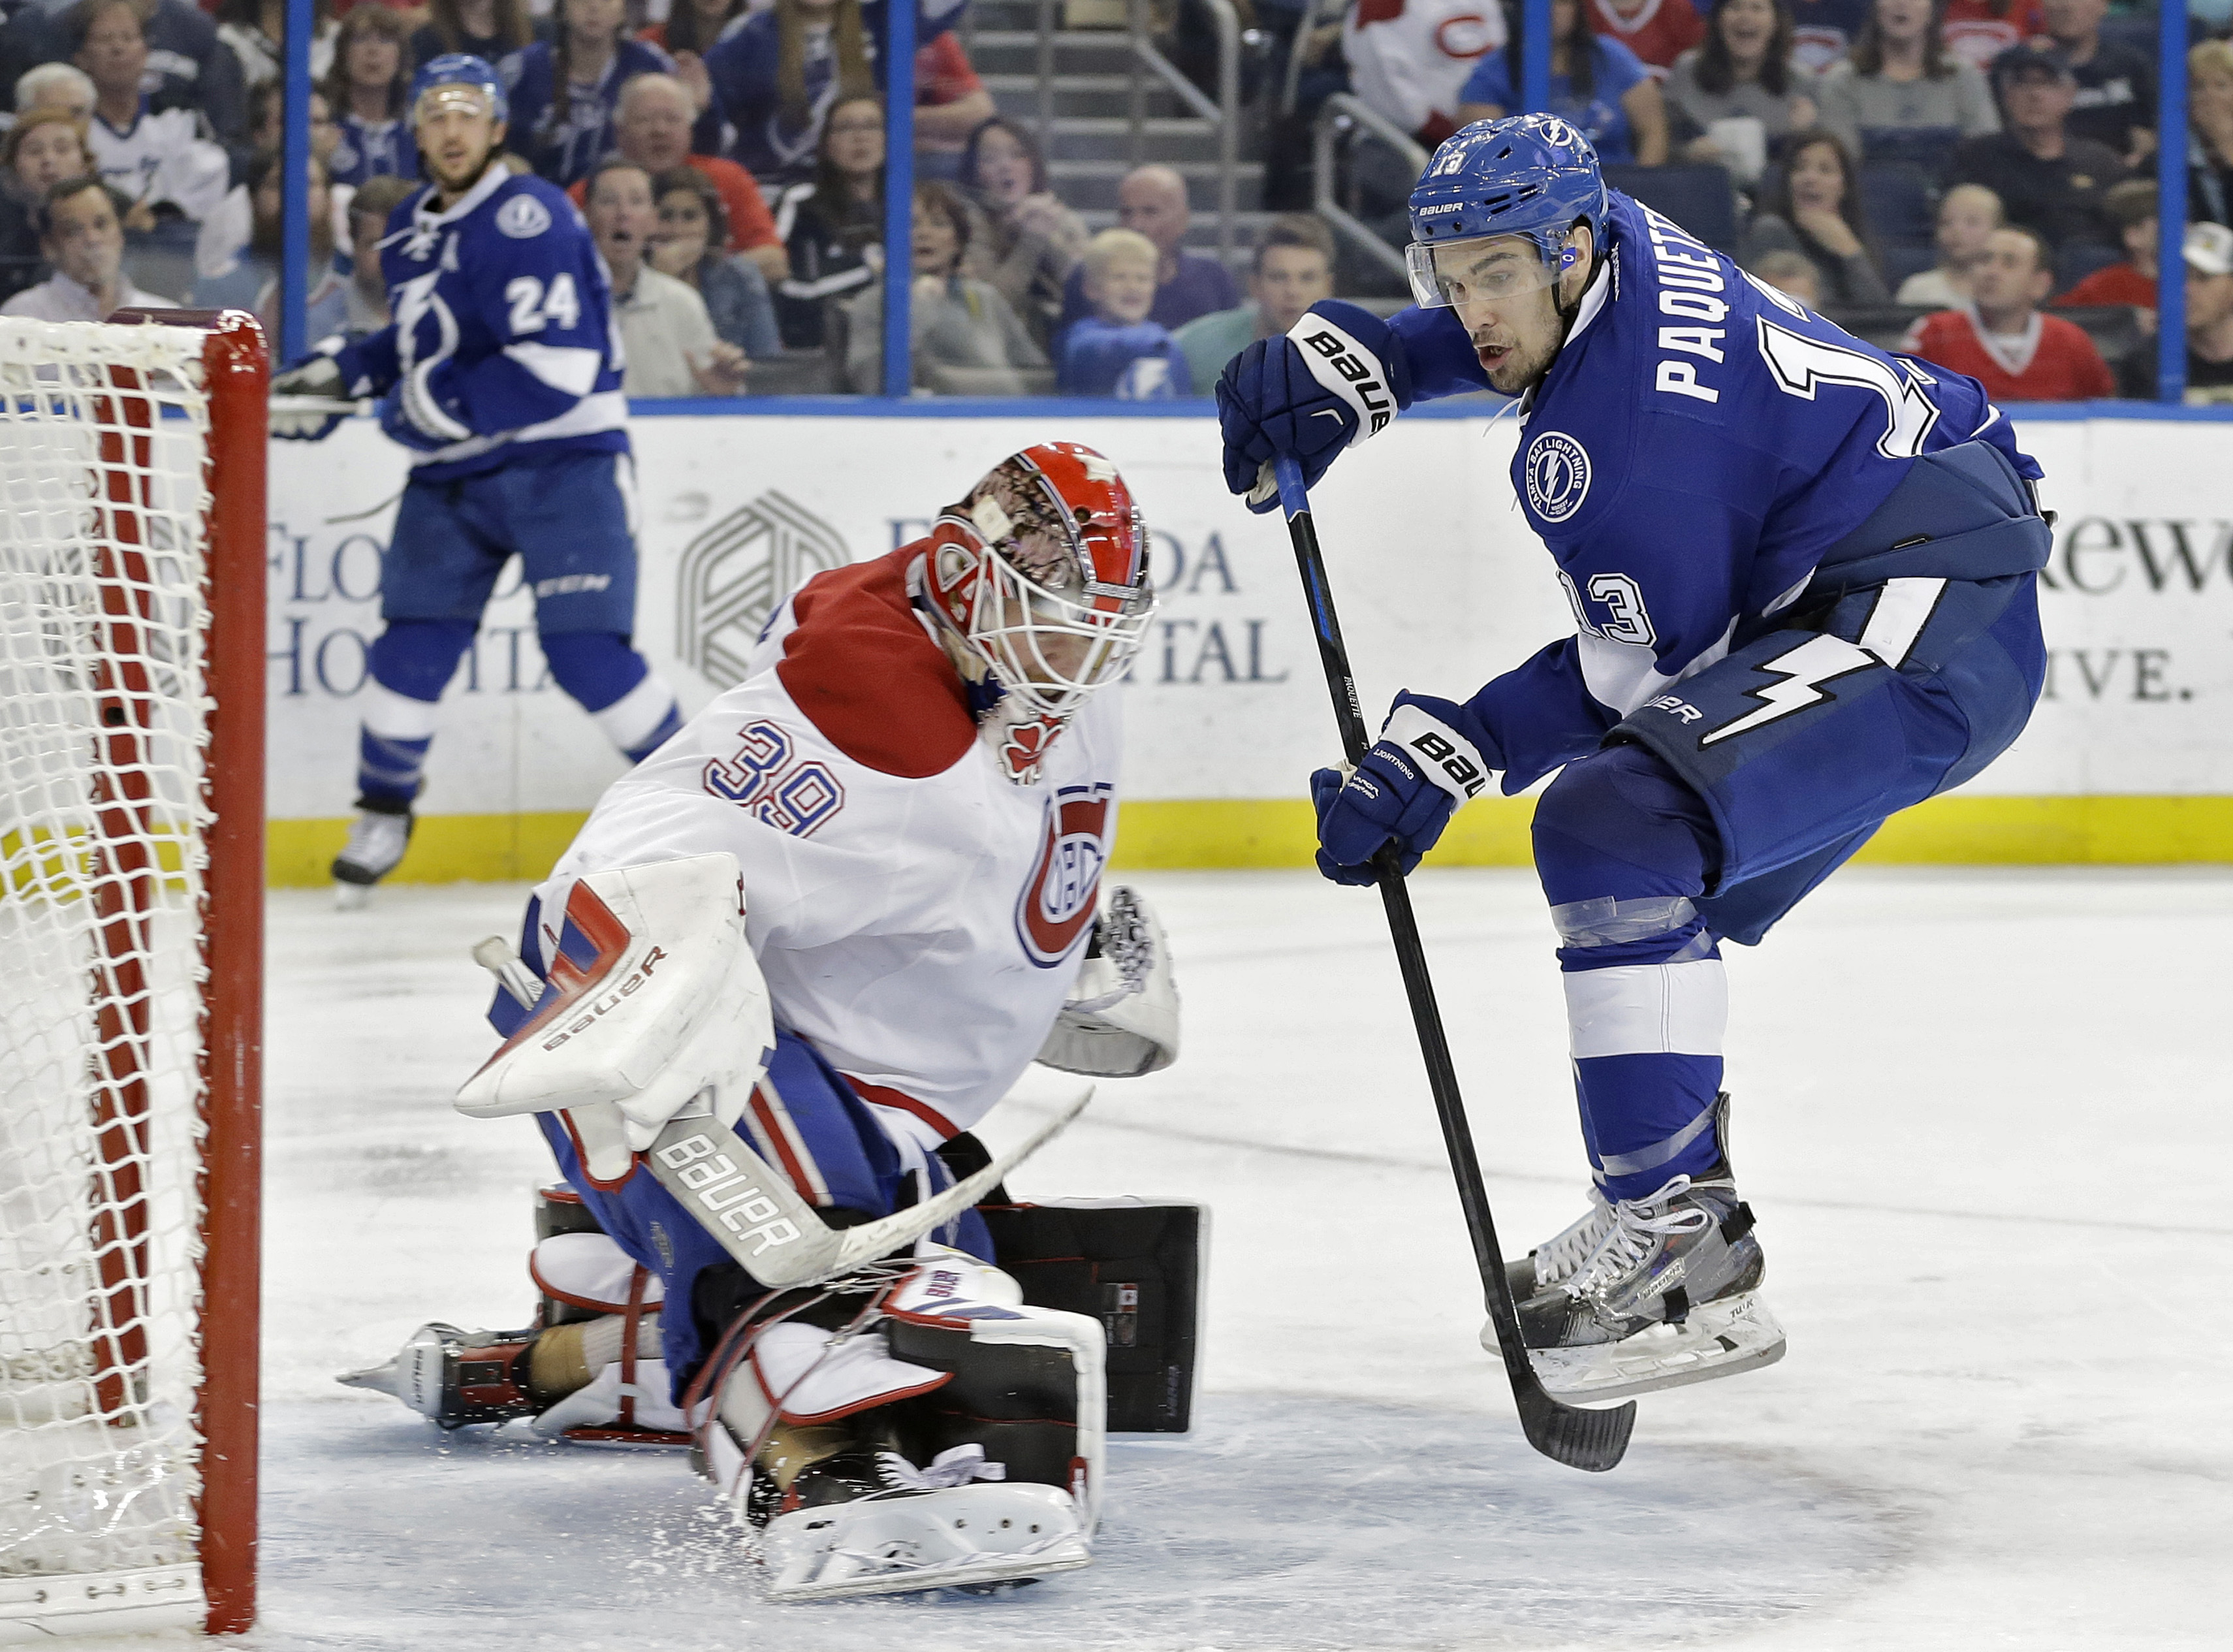 Tampa Bay Lightning center Cedric Paquette (13) watches his shot get stopped by Montreal Canadiens goalie Mike Condon (39) during the second period of an NHL hockey game Monday, Dec. 28, 2015, in Tampa, Fla. (AP Photo/Chris O'Meara)